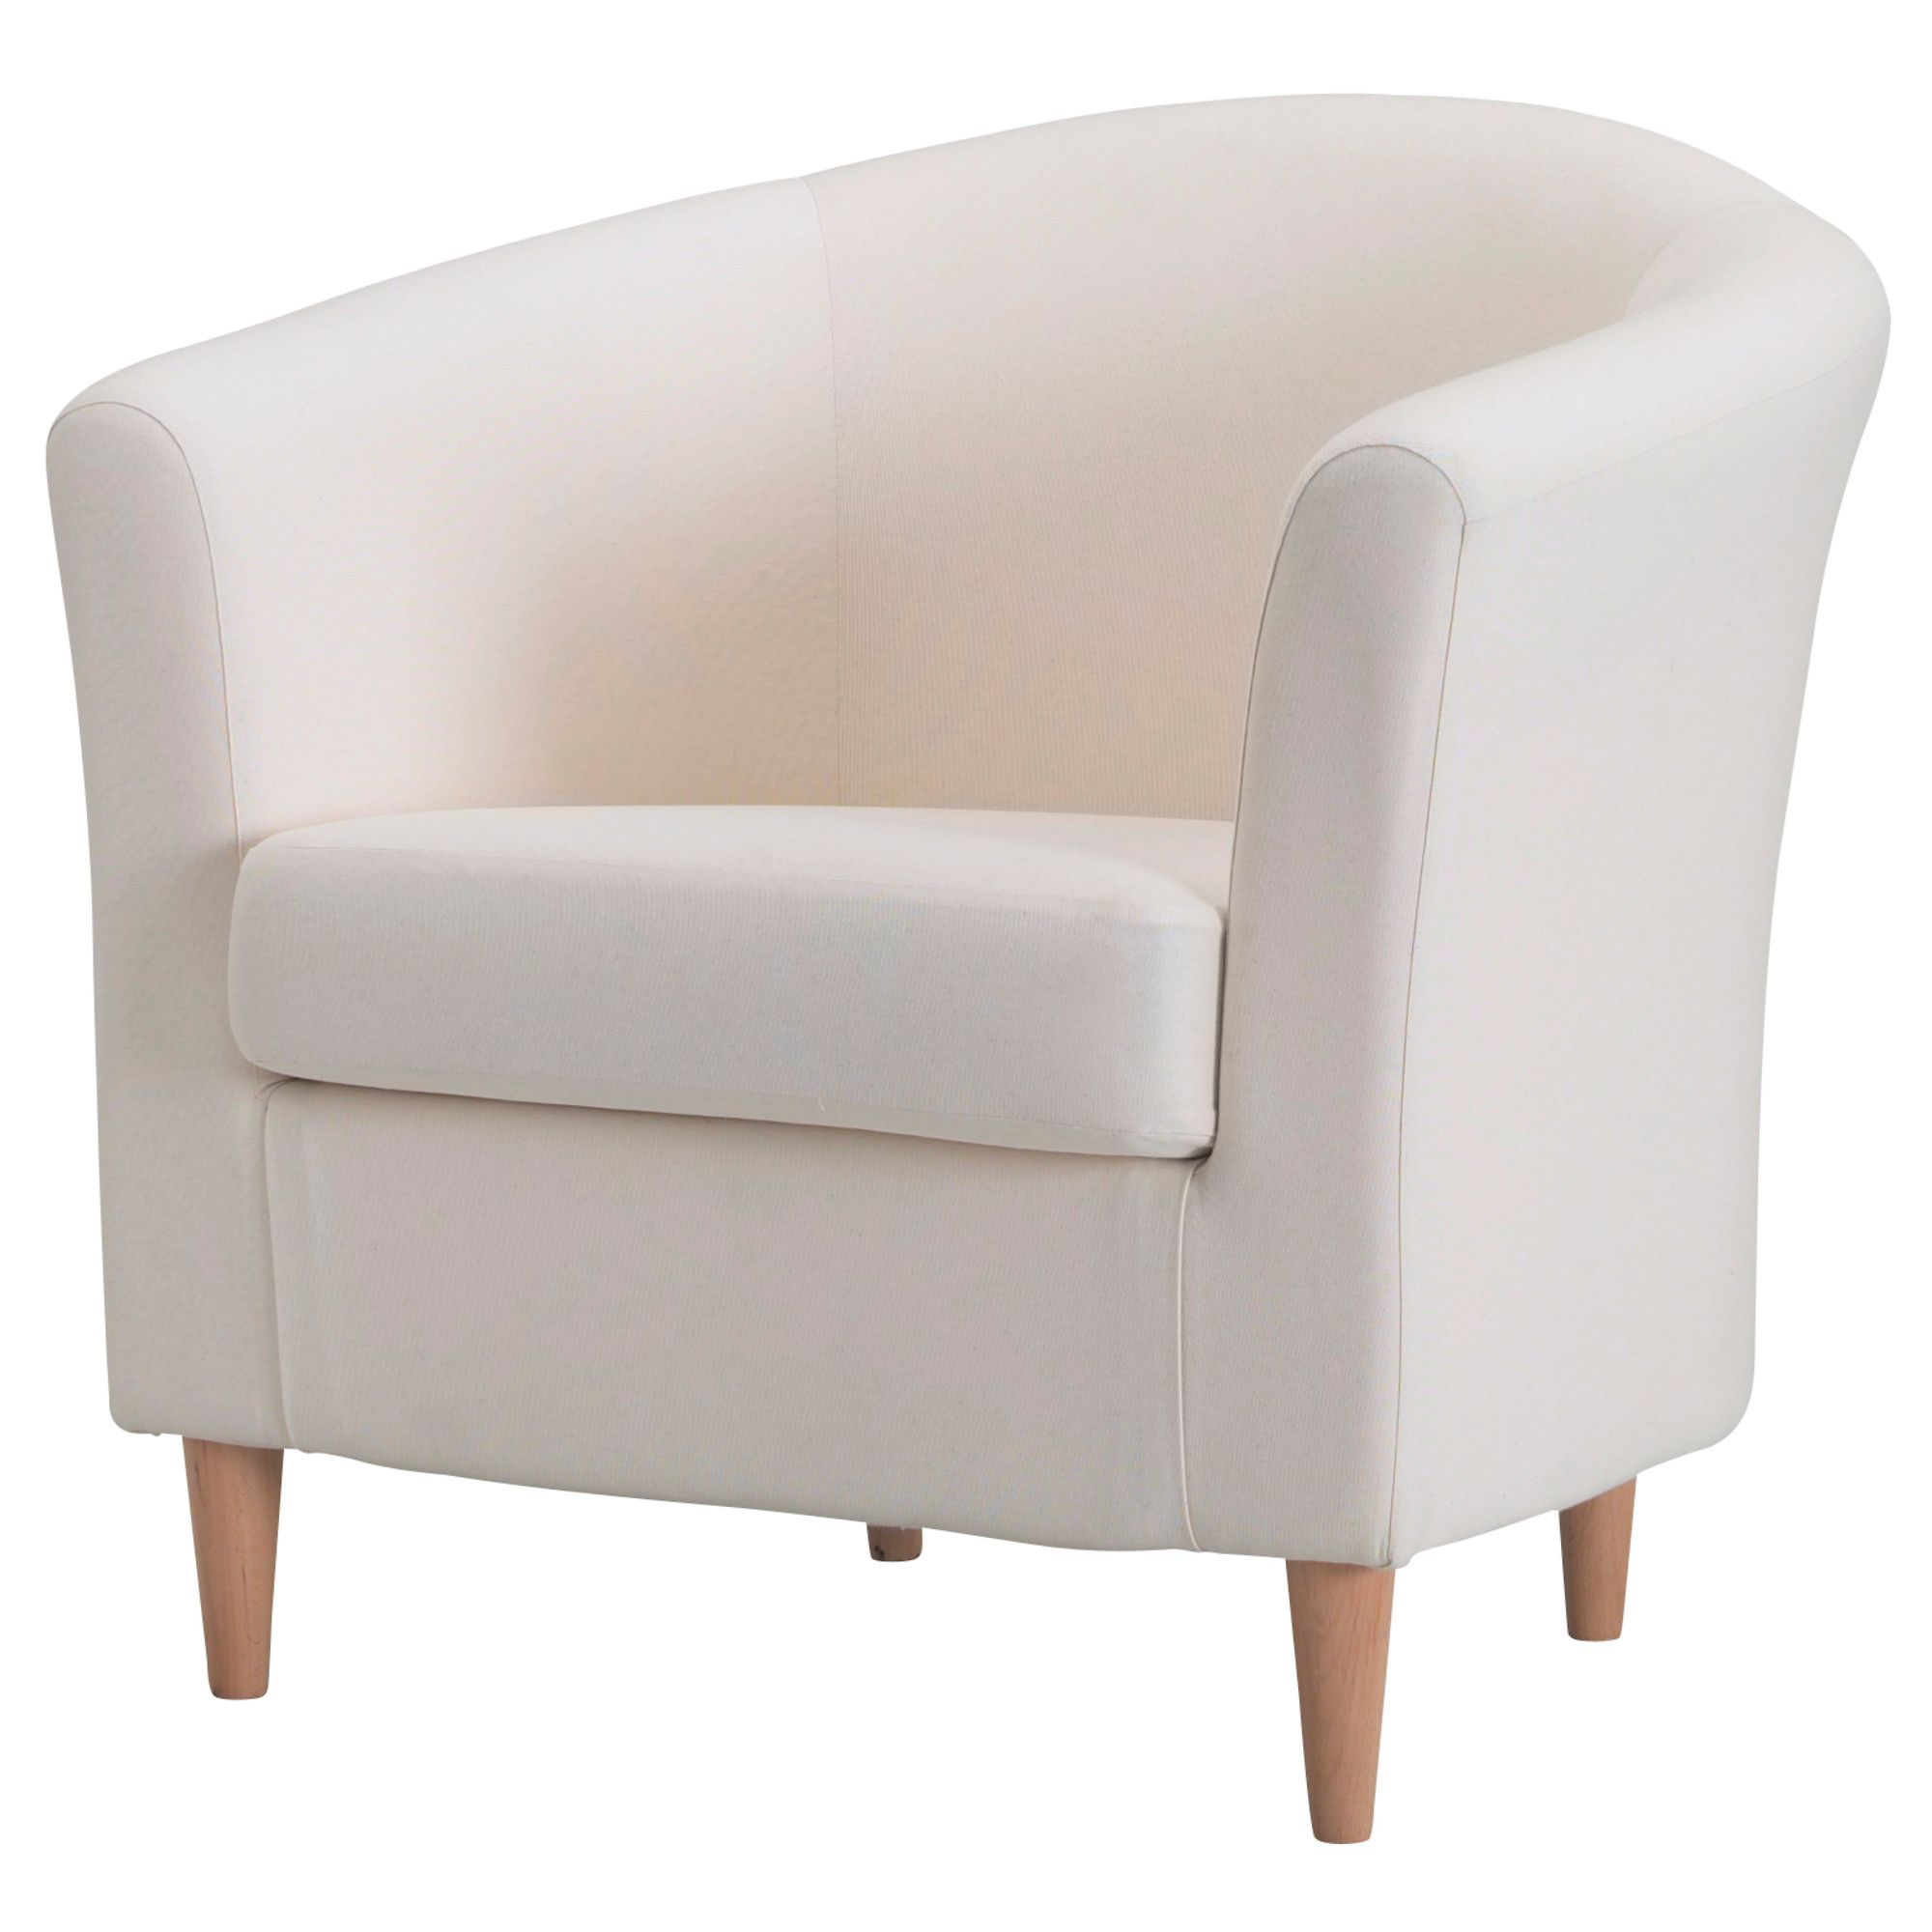 Ikea Australia Affordable Swedish Home Furniture Ikea Armchair Ikea Chair Furniture